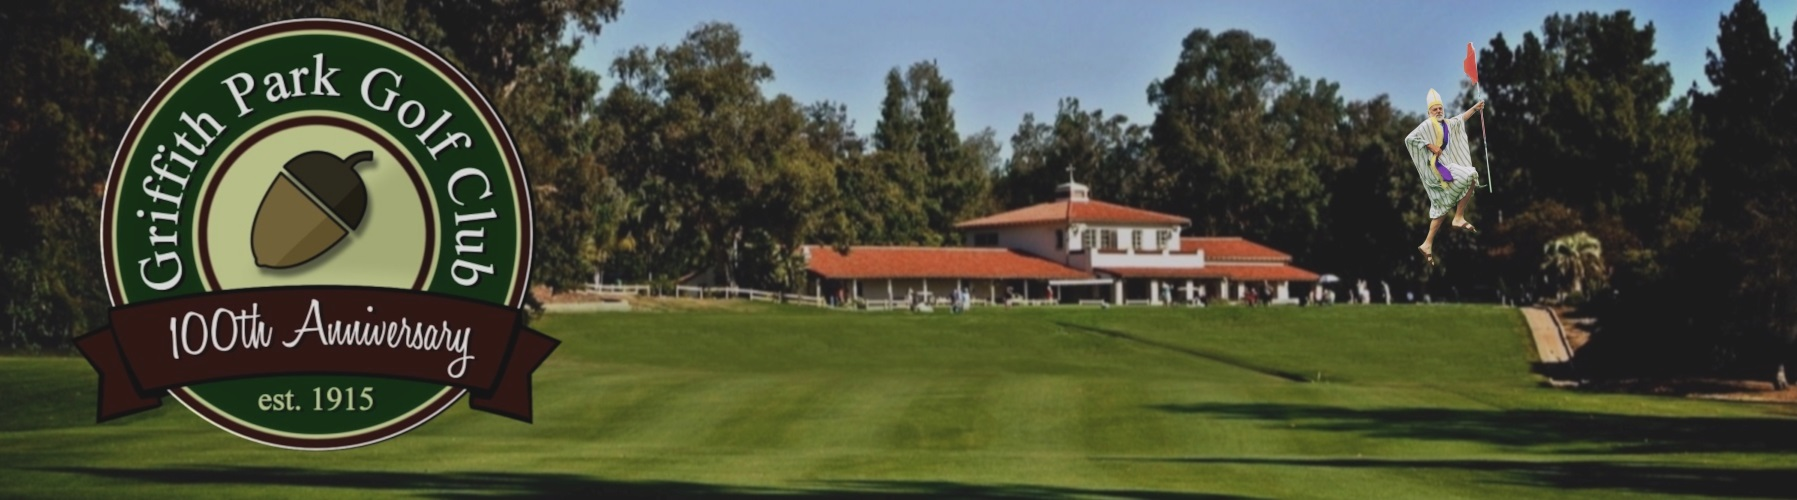 Griffith Park Golf Club